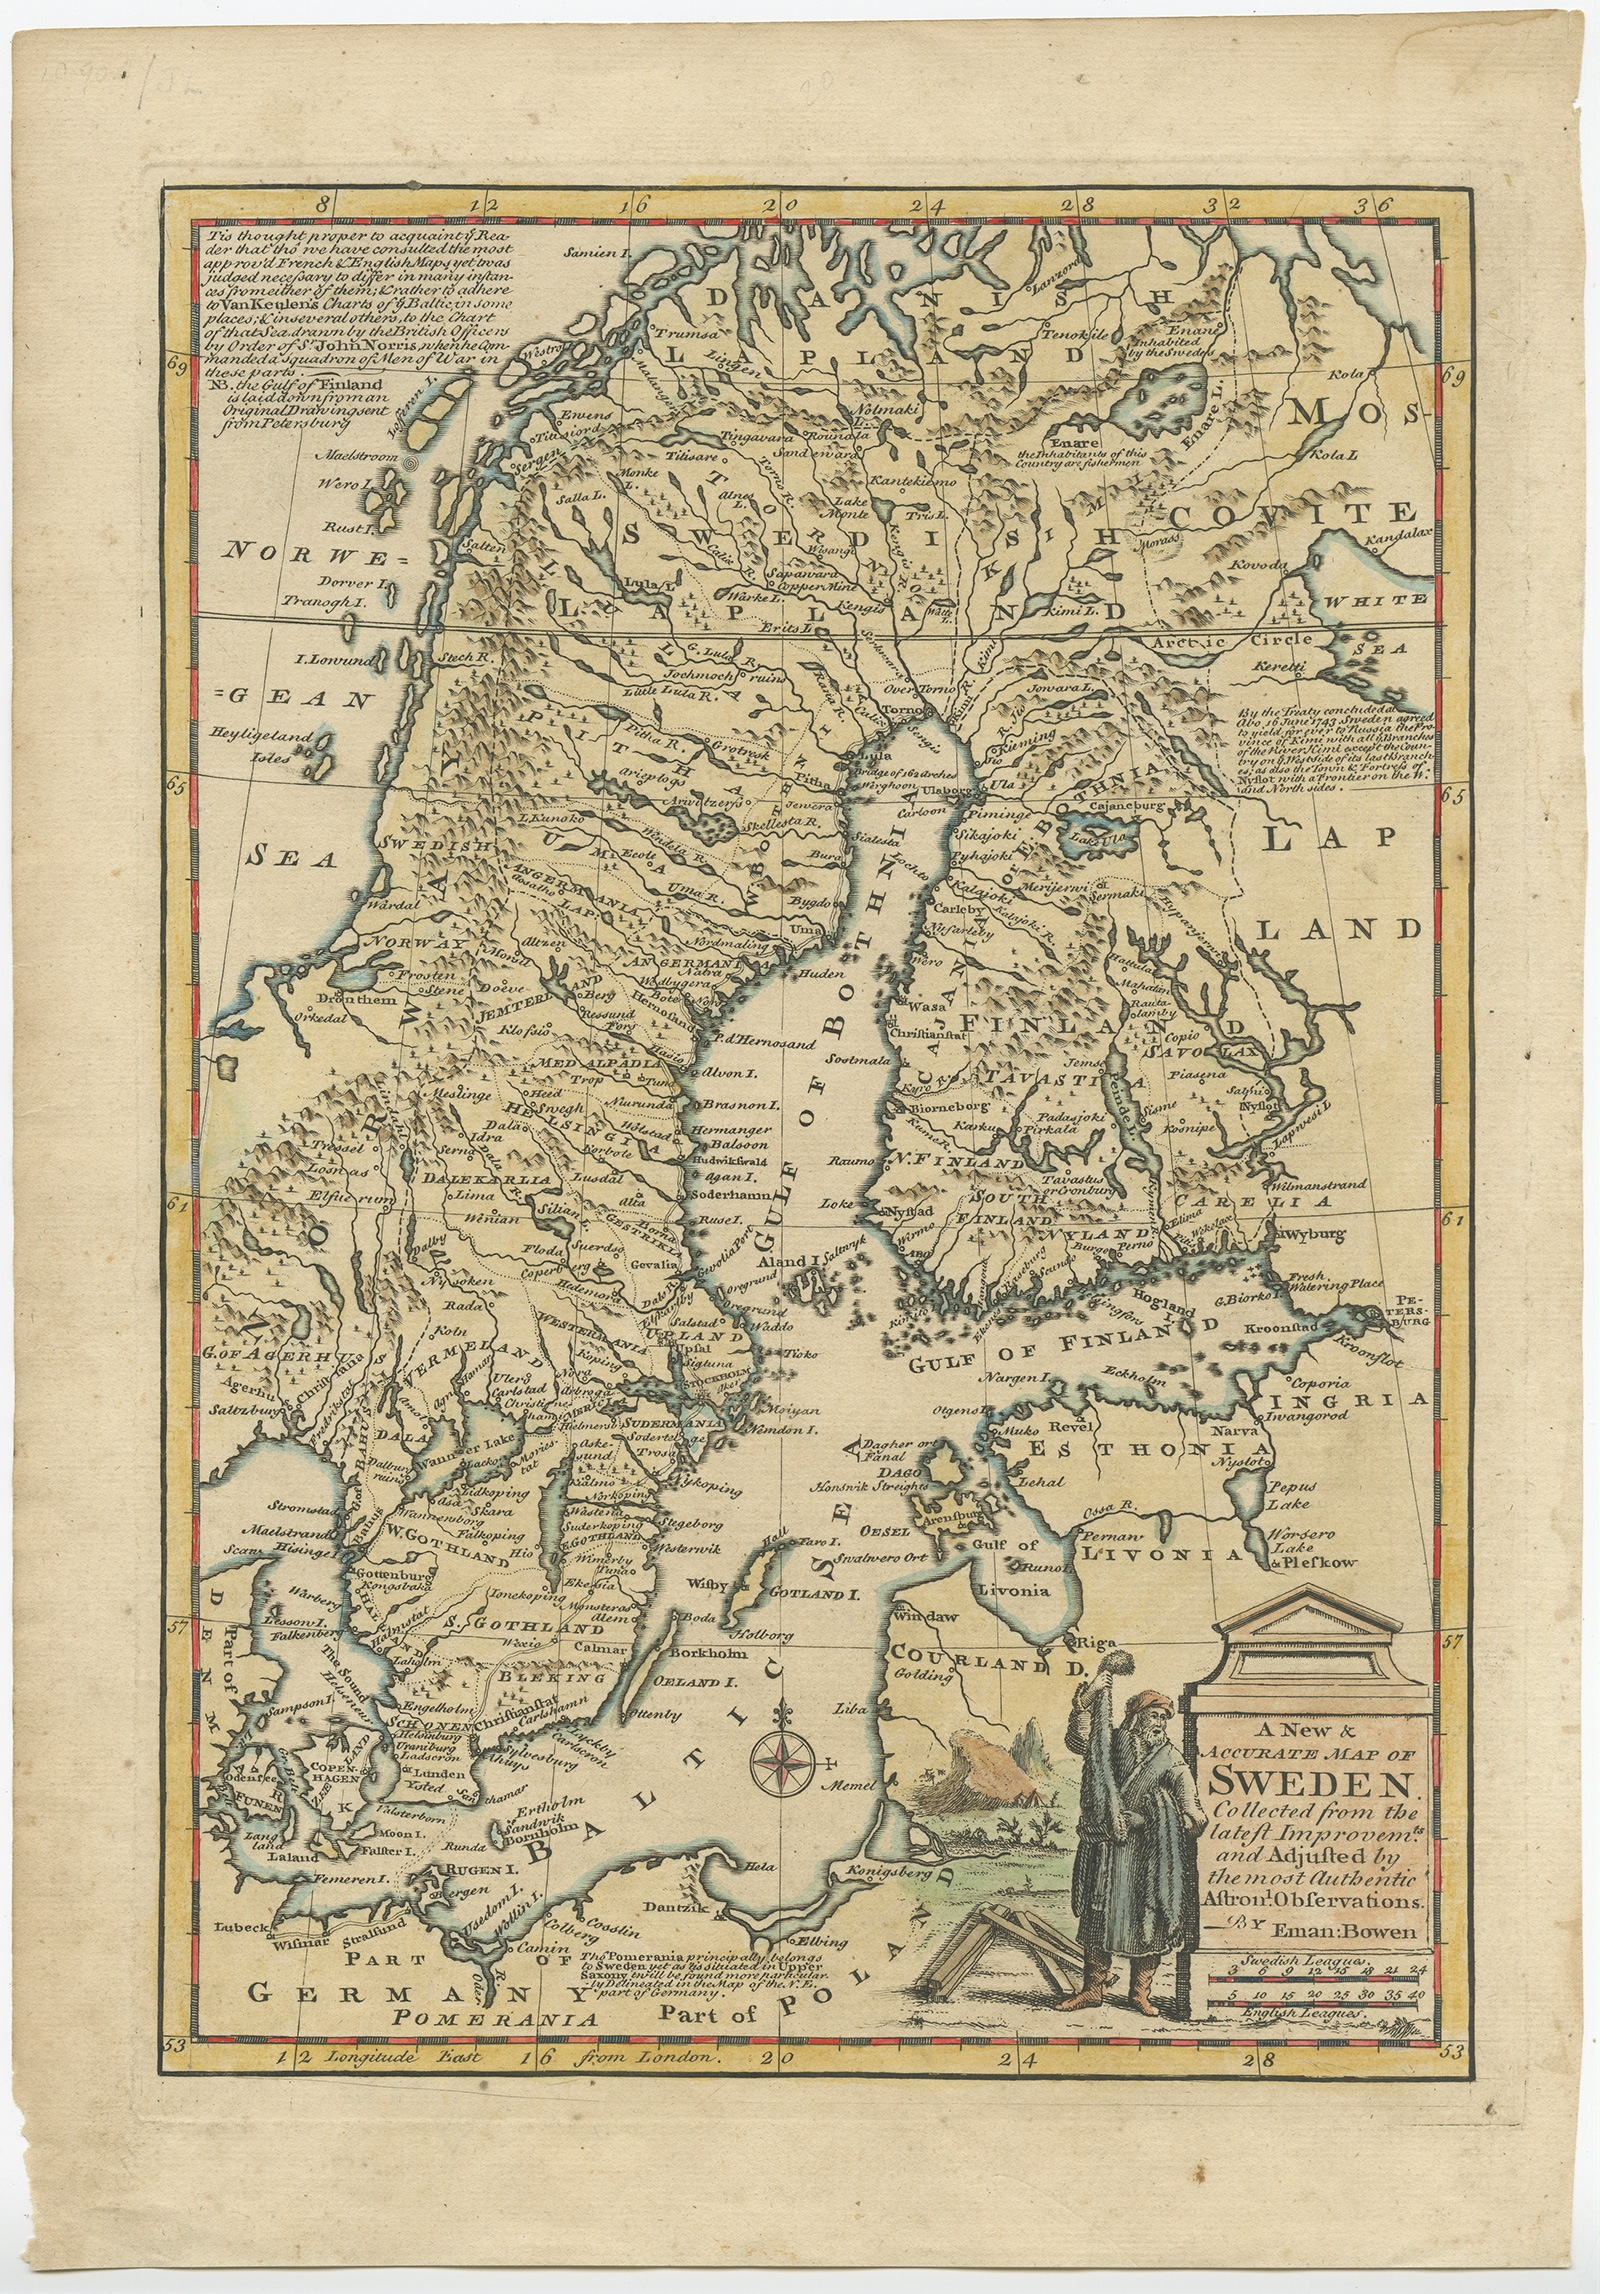 A New & Accurate Map of Sweden - Bowen (1747) | eBay